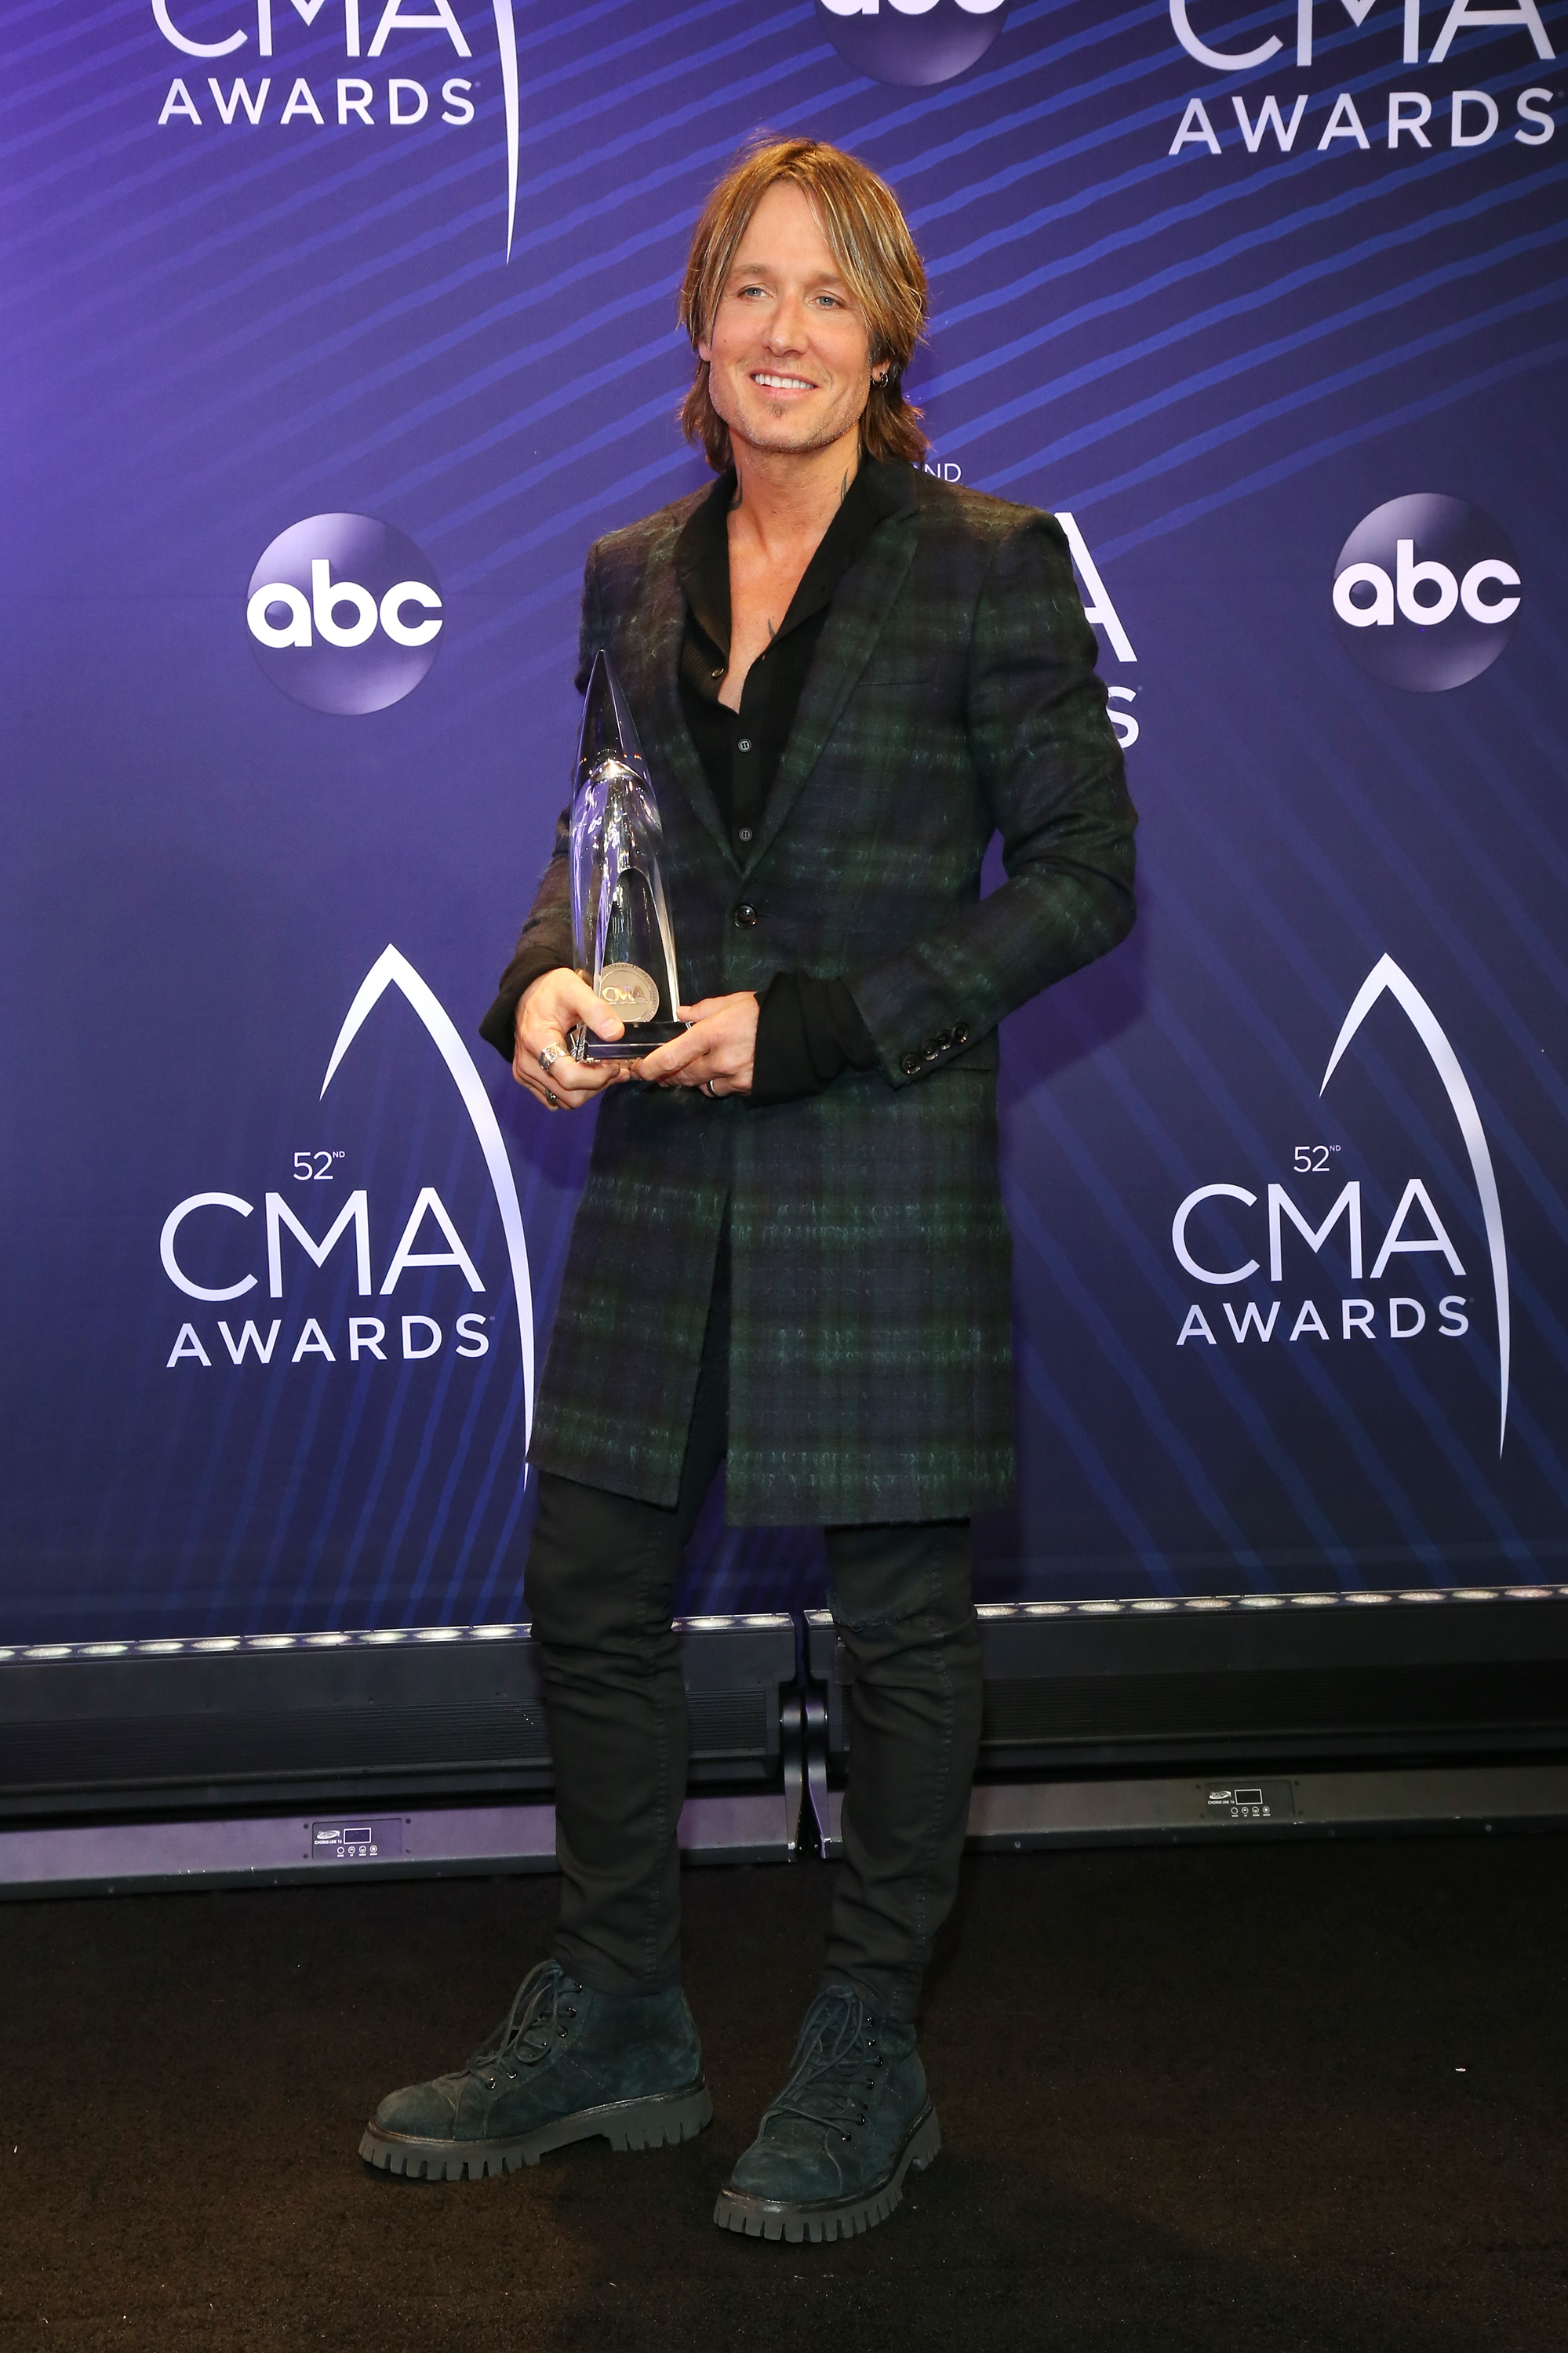 CMA Awards 2018: Backstage, Keith Urban talks Nicole, Garth Brooks talks Trisha and Carrie Underwood talks maternity clothes